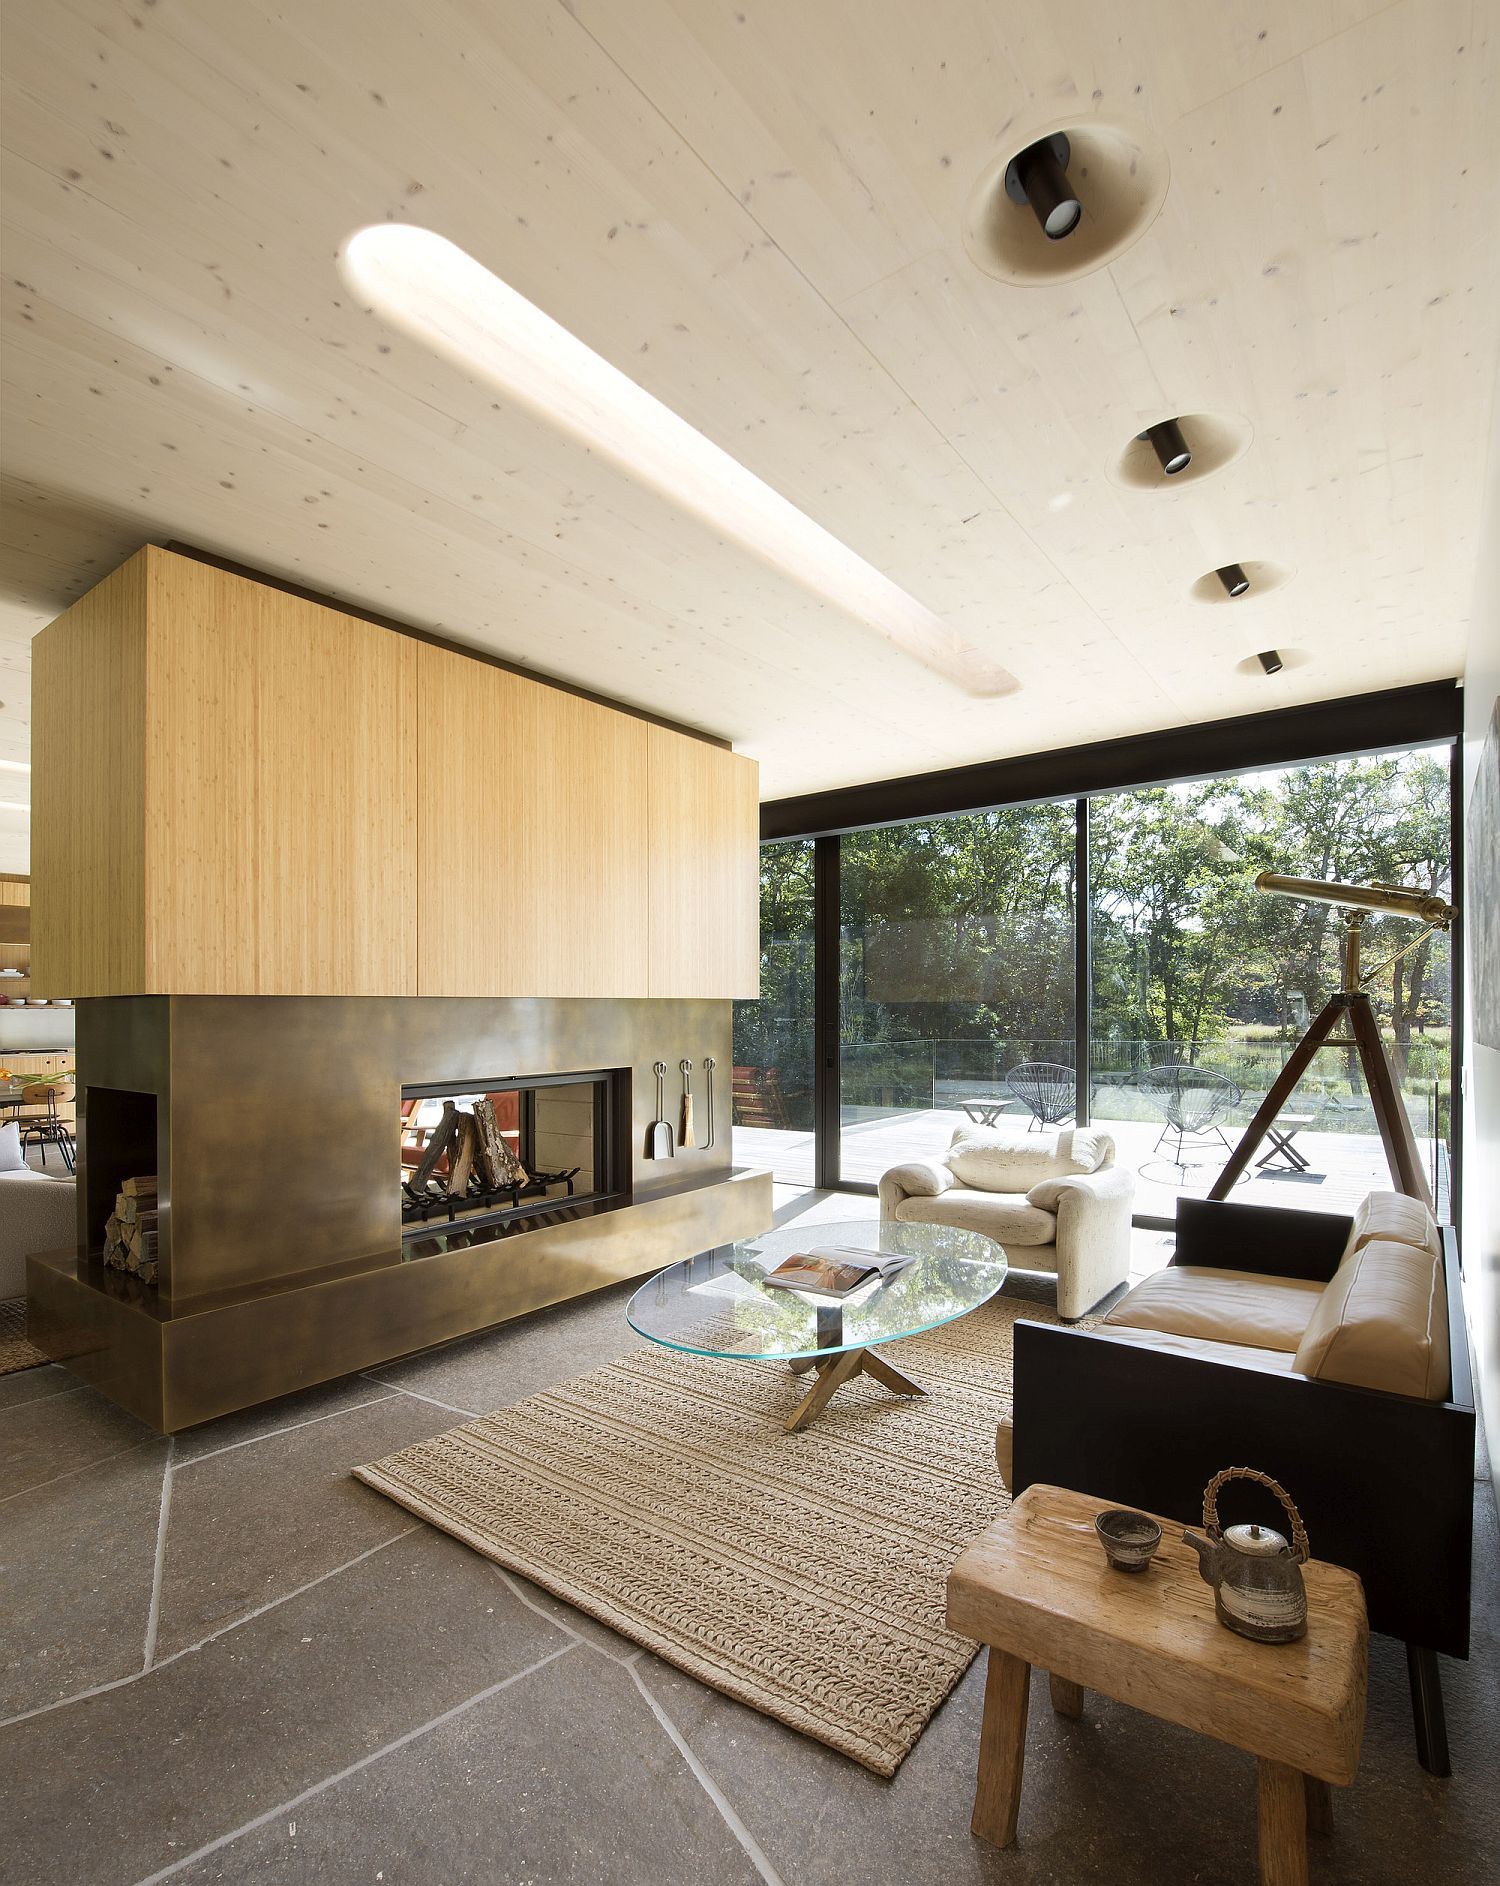 Double sided fireplace for the open plan living area